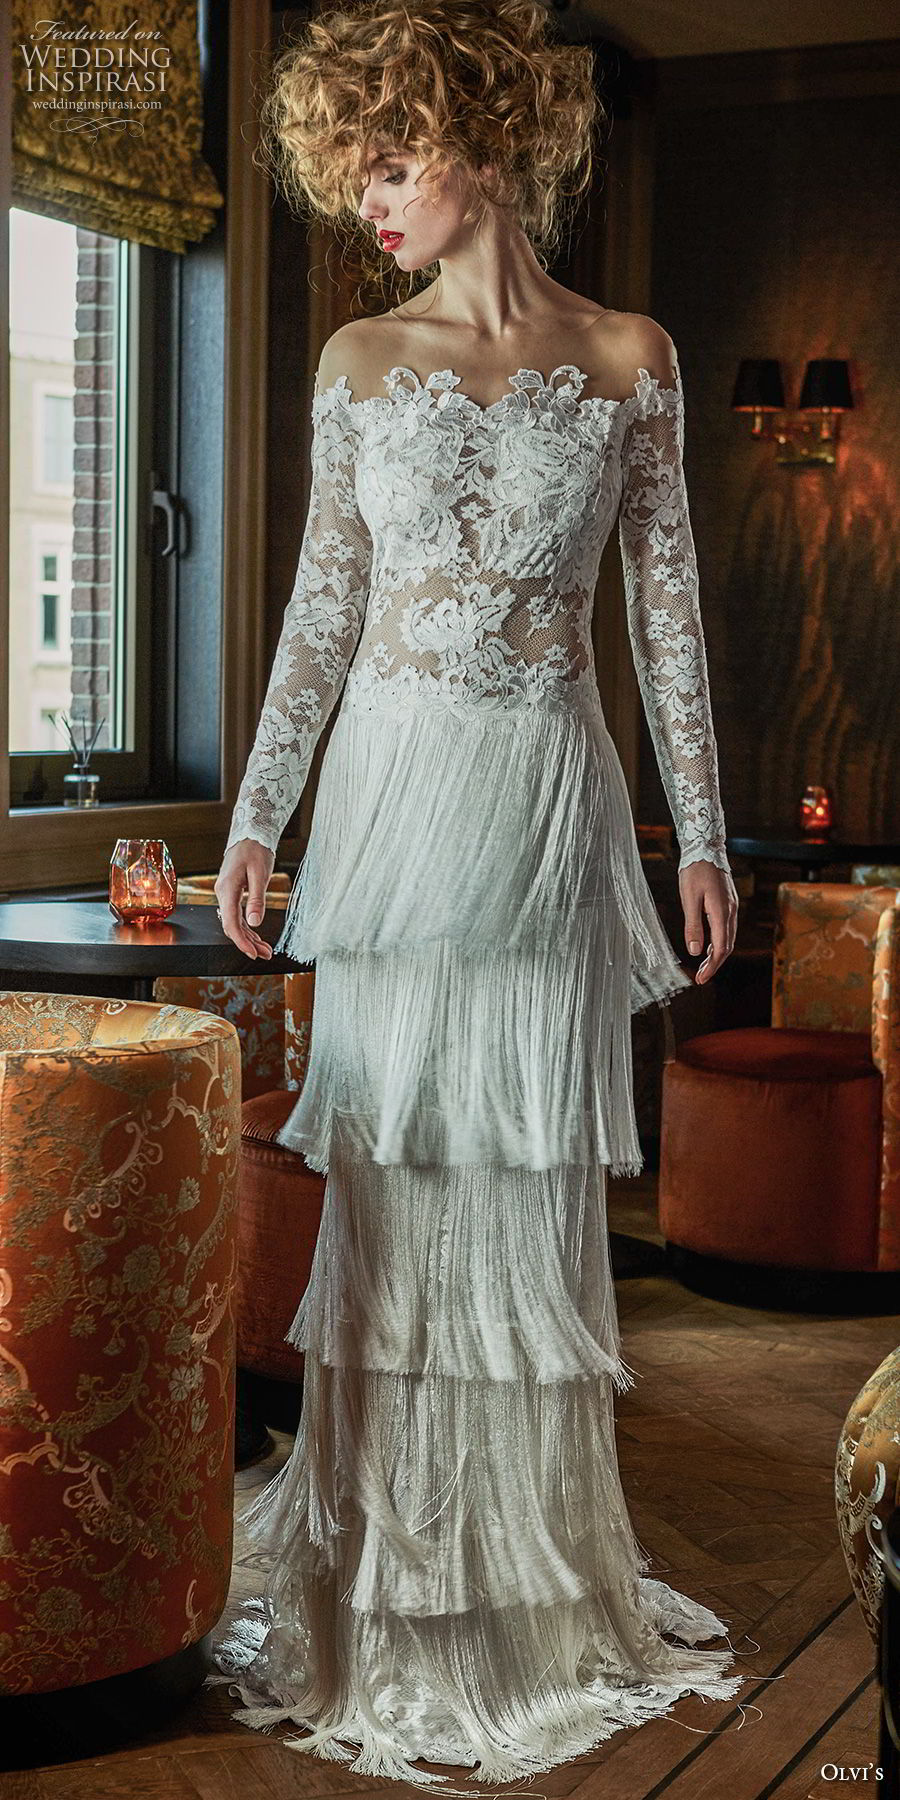 olvi 2019 bridal long sleeves off the shoulder heavily embellished bodice tiered fringe skirt bohemian vintage column wedding dress sweep train (7) mv